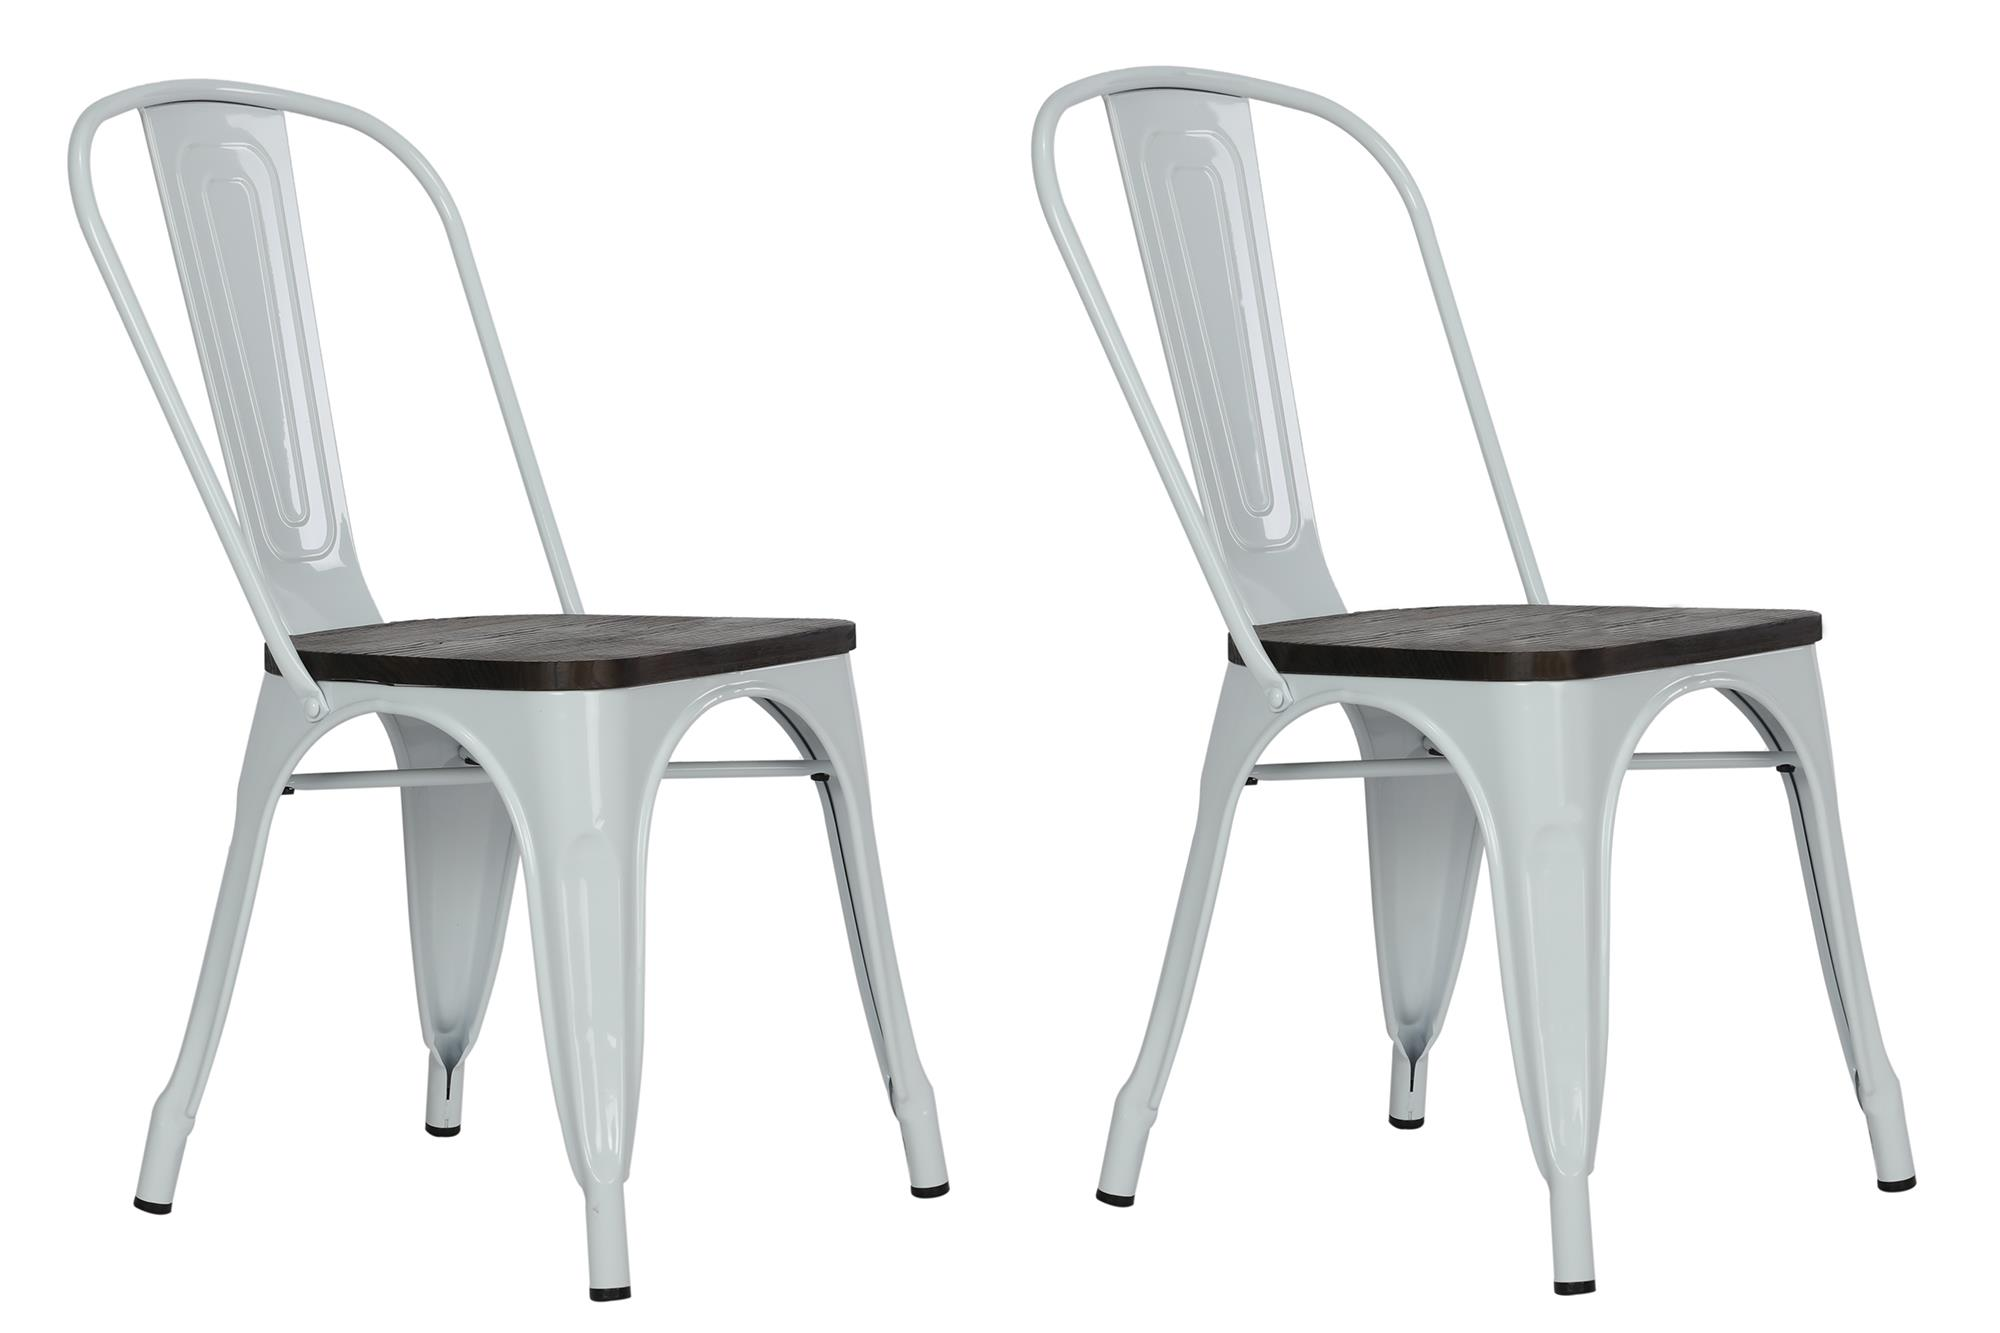 White Metal Chair Dorel Fusion White Metal Dining Chair With Wood Seat Set Of 2